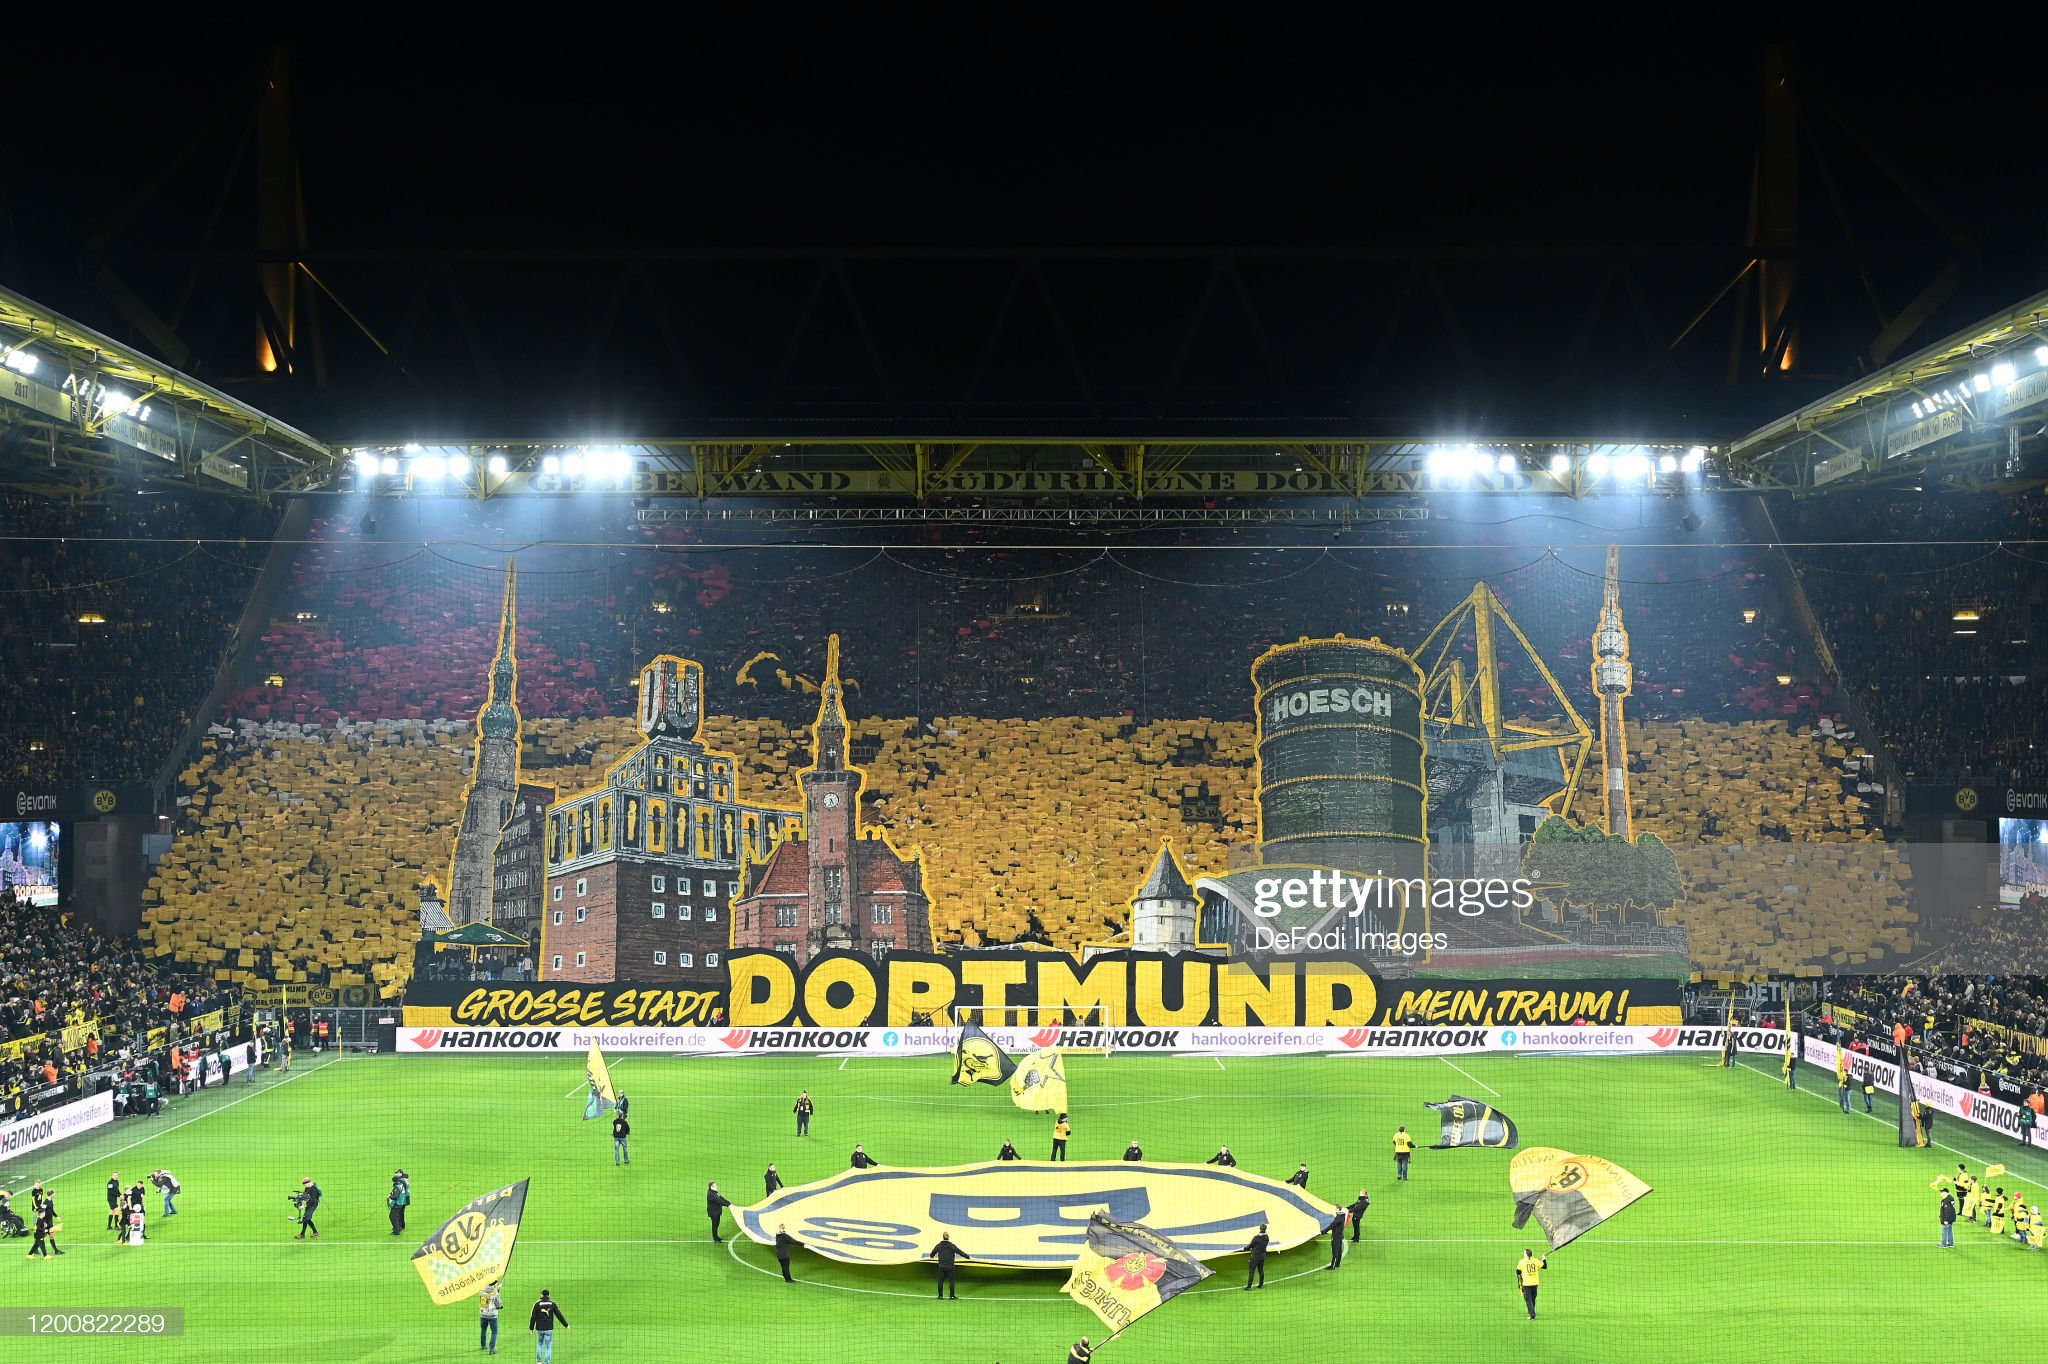 Dortmund v PSG preview, prediction and odds